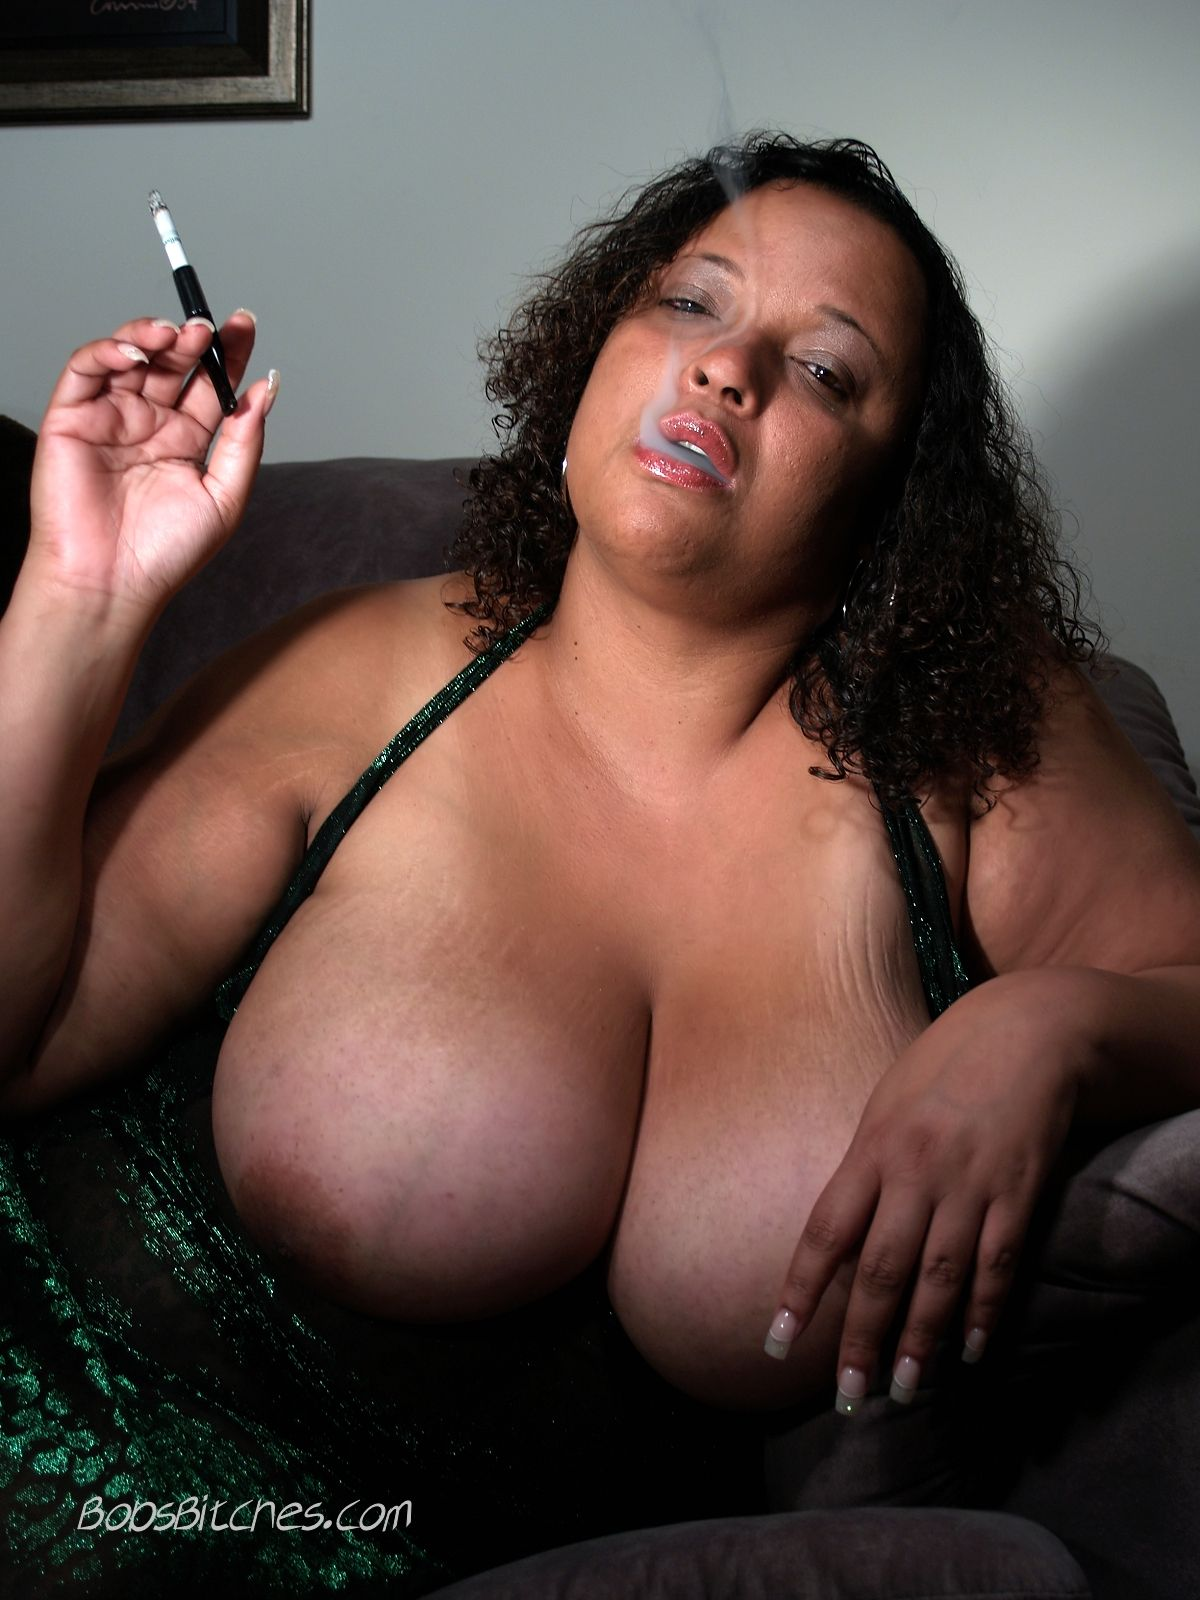 Big tit ebony bbw is smoking a cigarette with tits hanging out of her tight dress